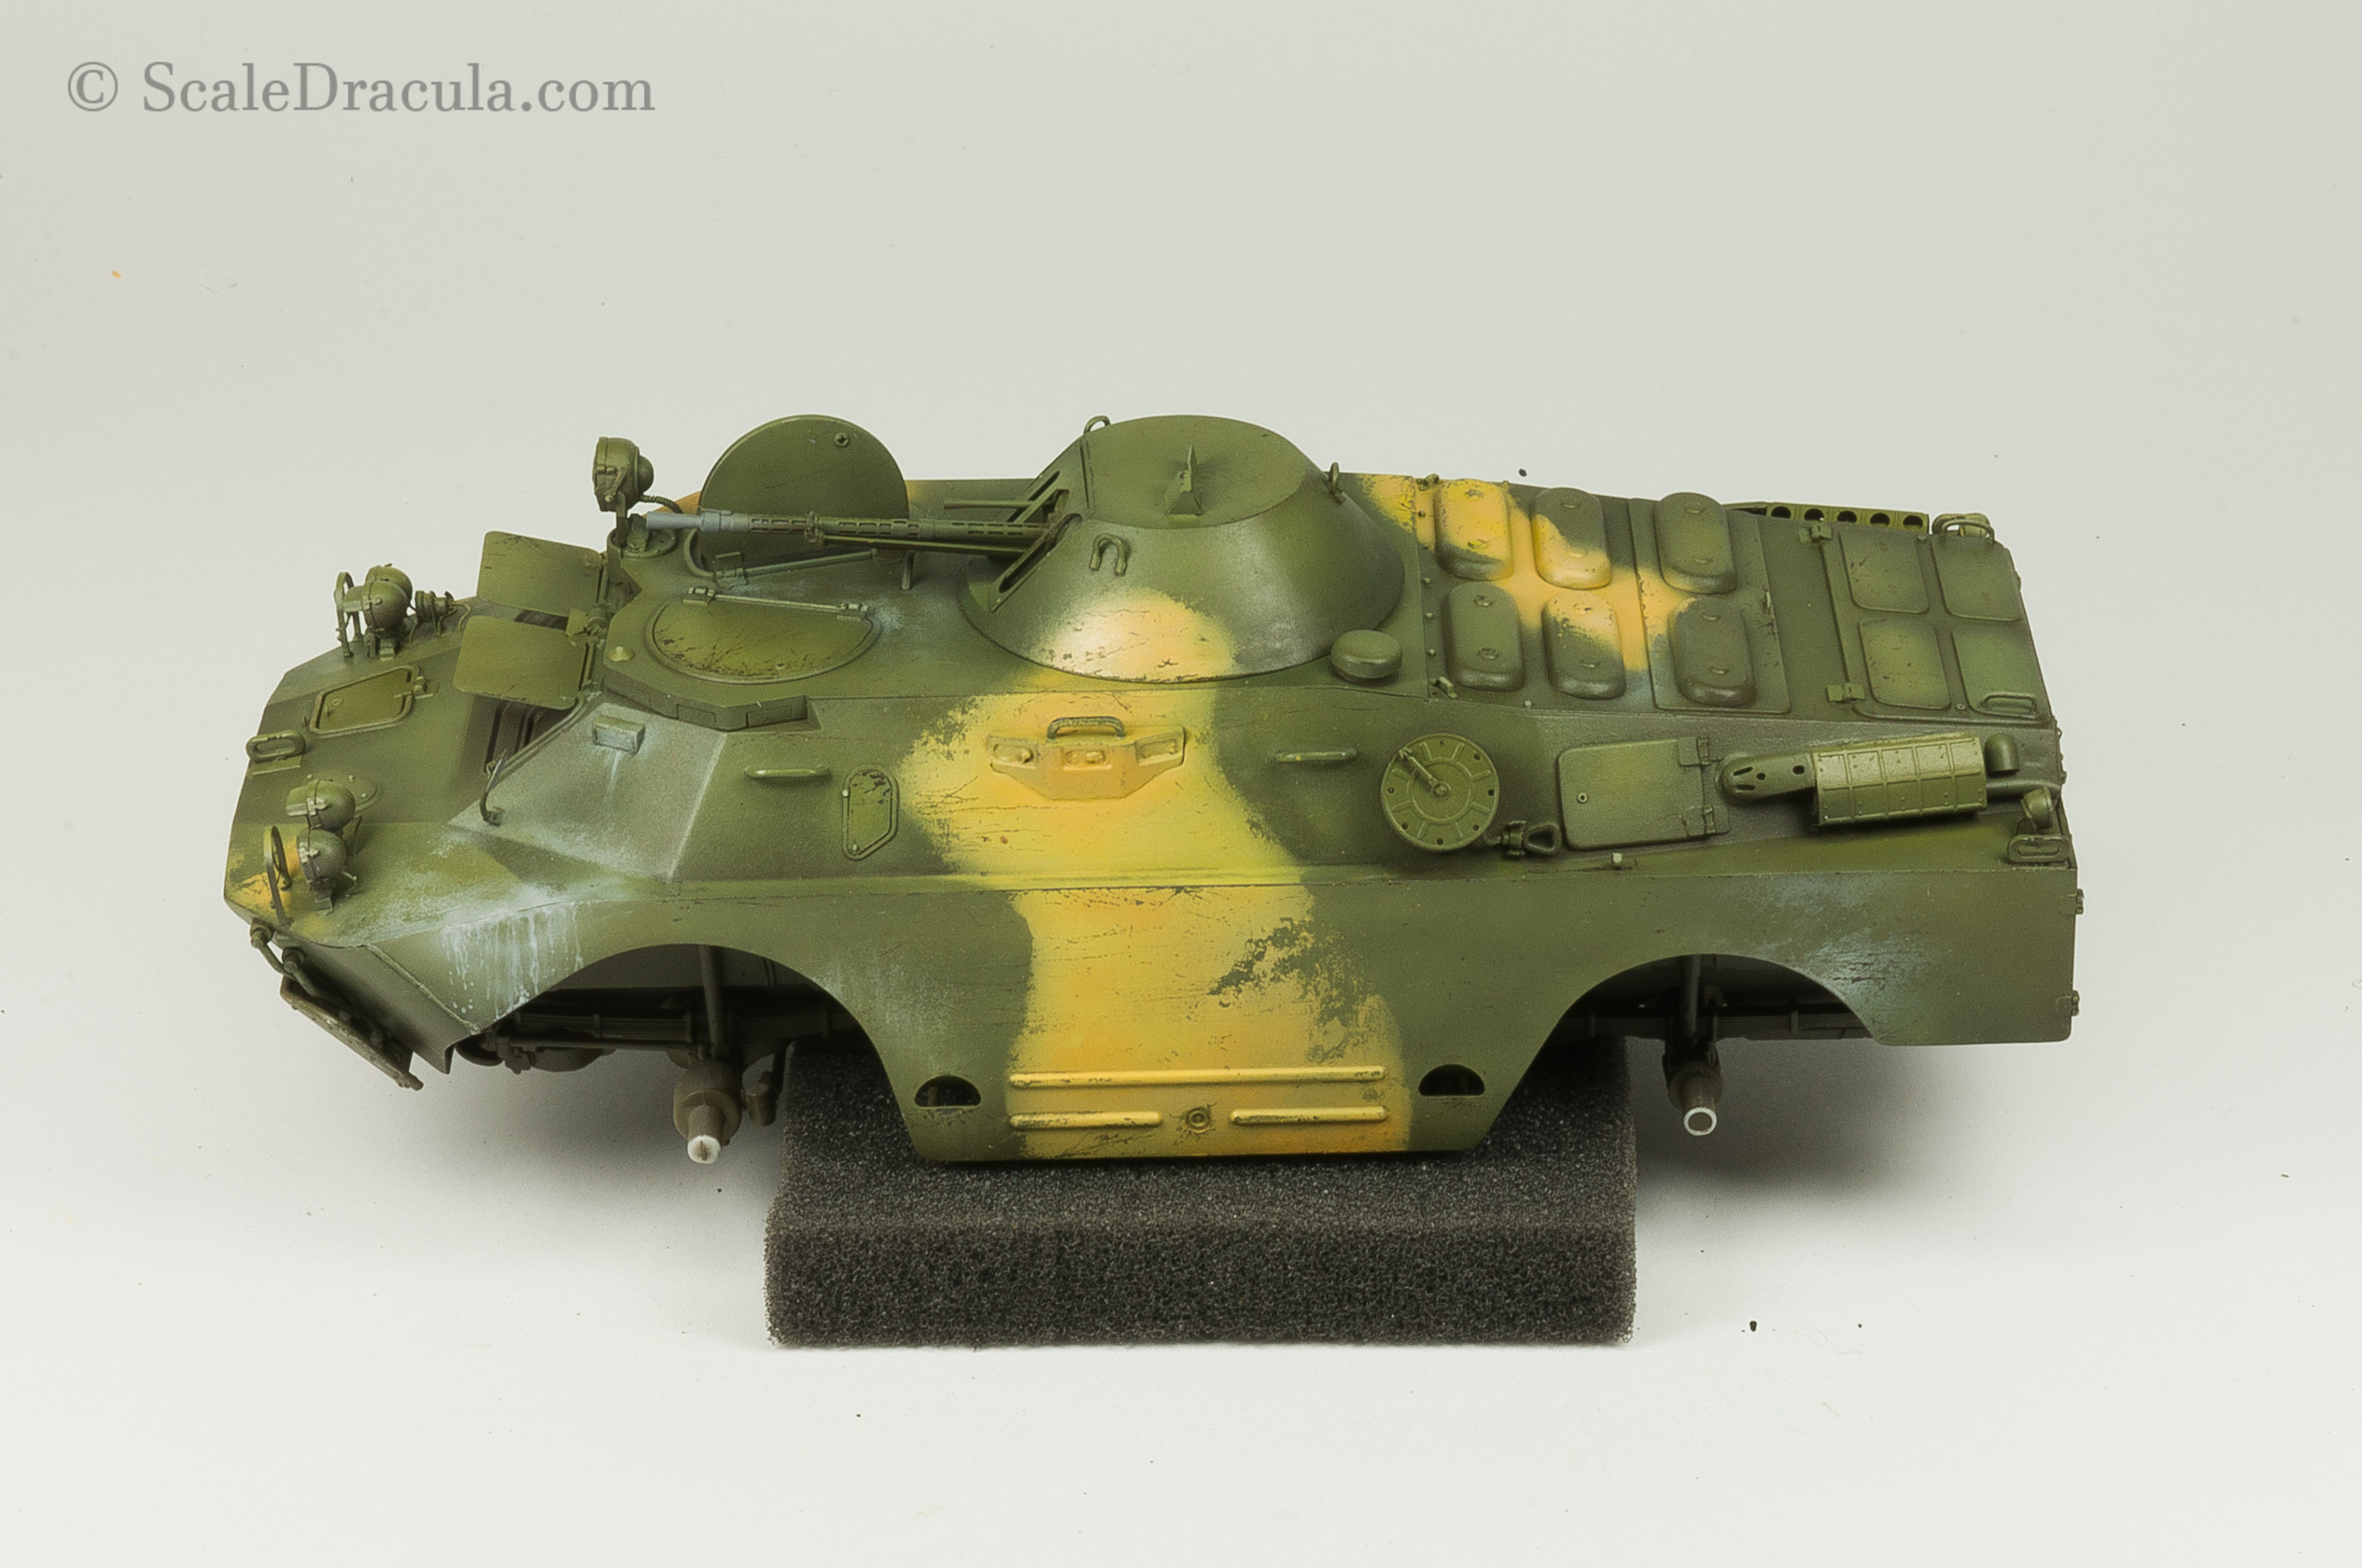 Chipping the yellow camouflage, BRDM-2 by Trumpeter